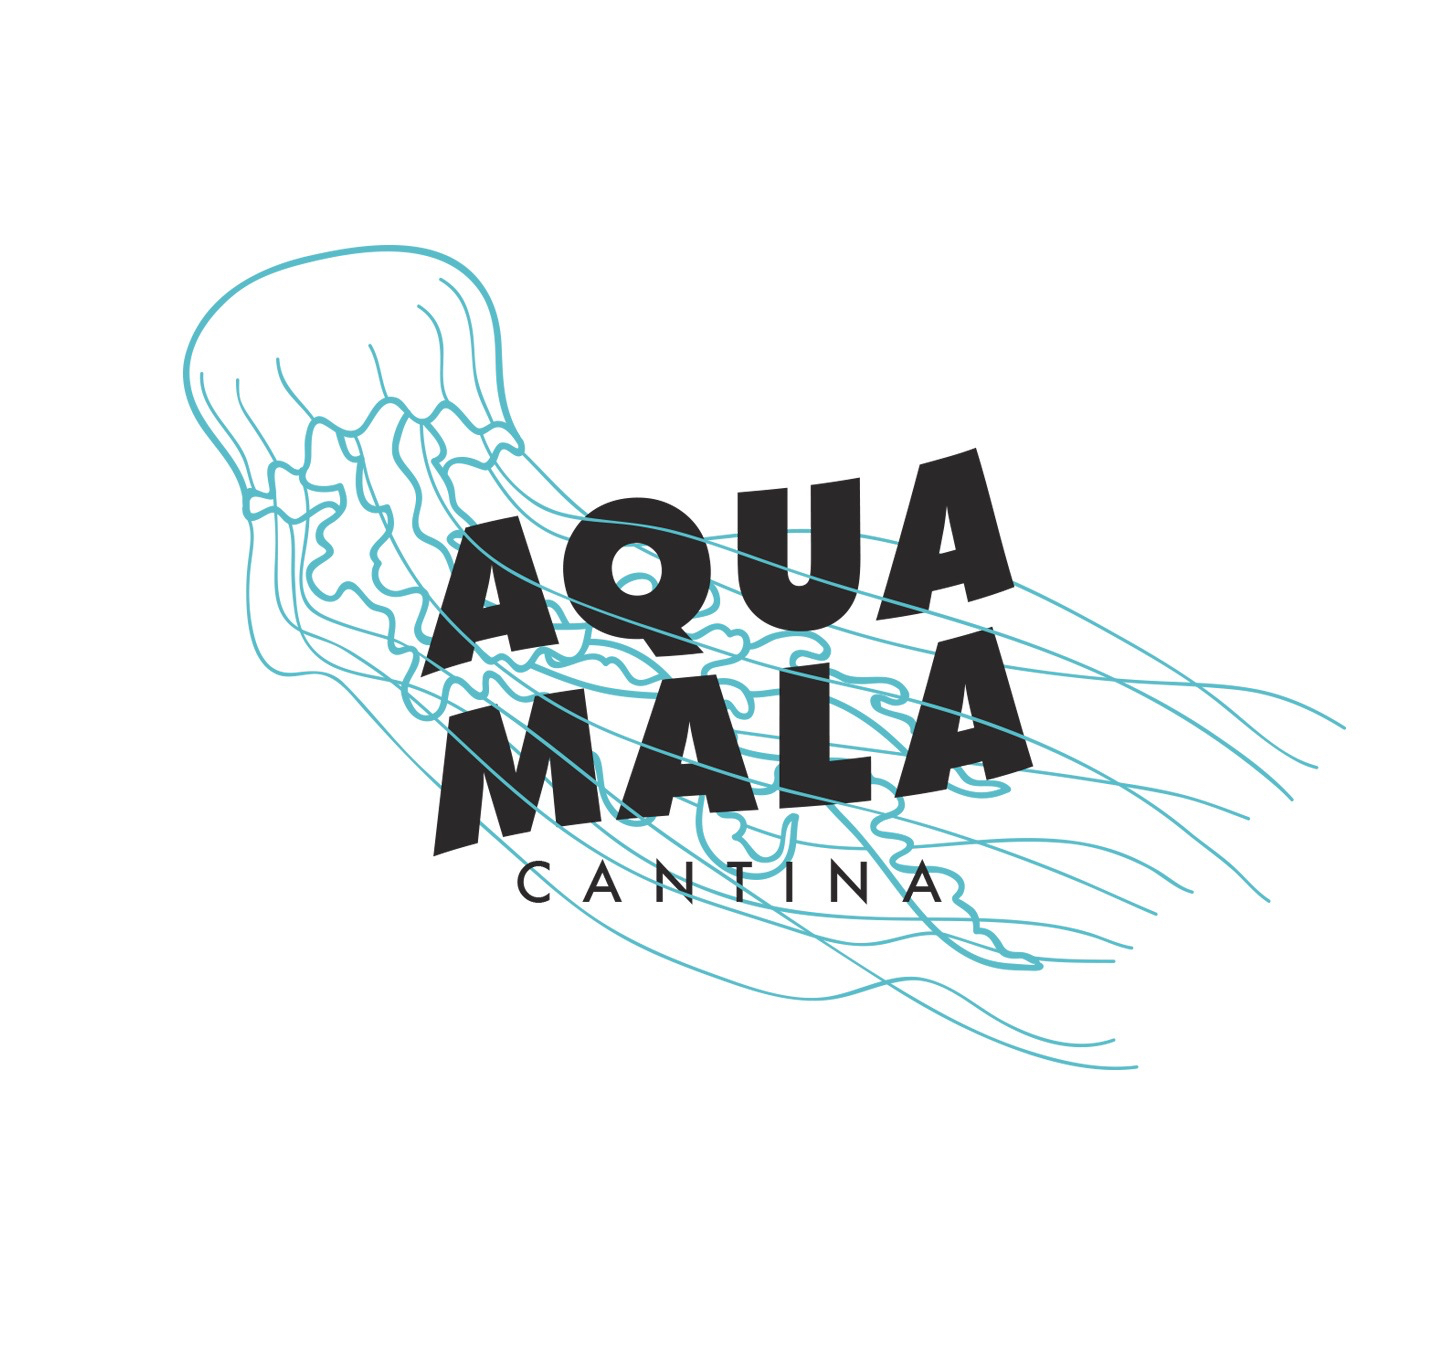 Logo for Cantina concept in Puerto Penasco, Mexico